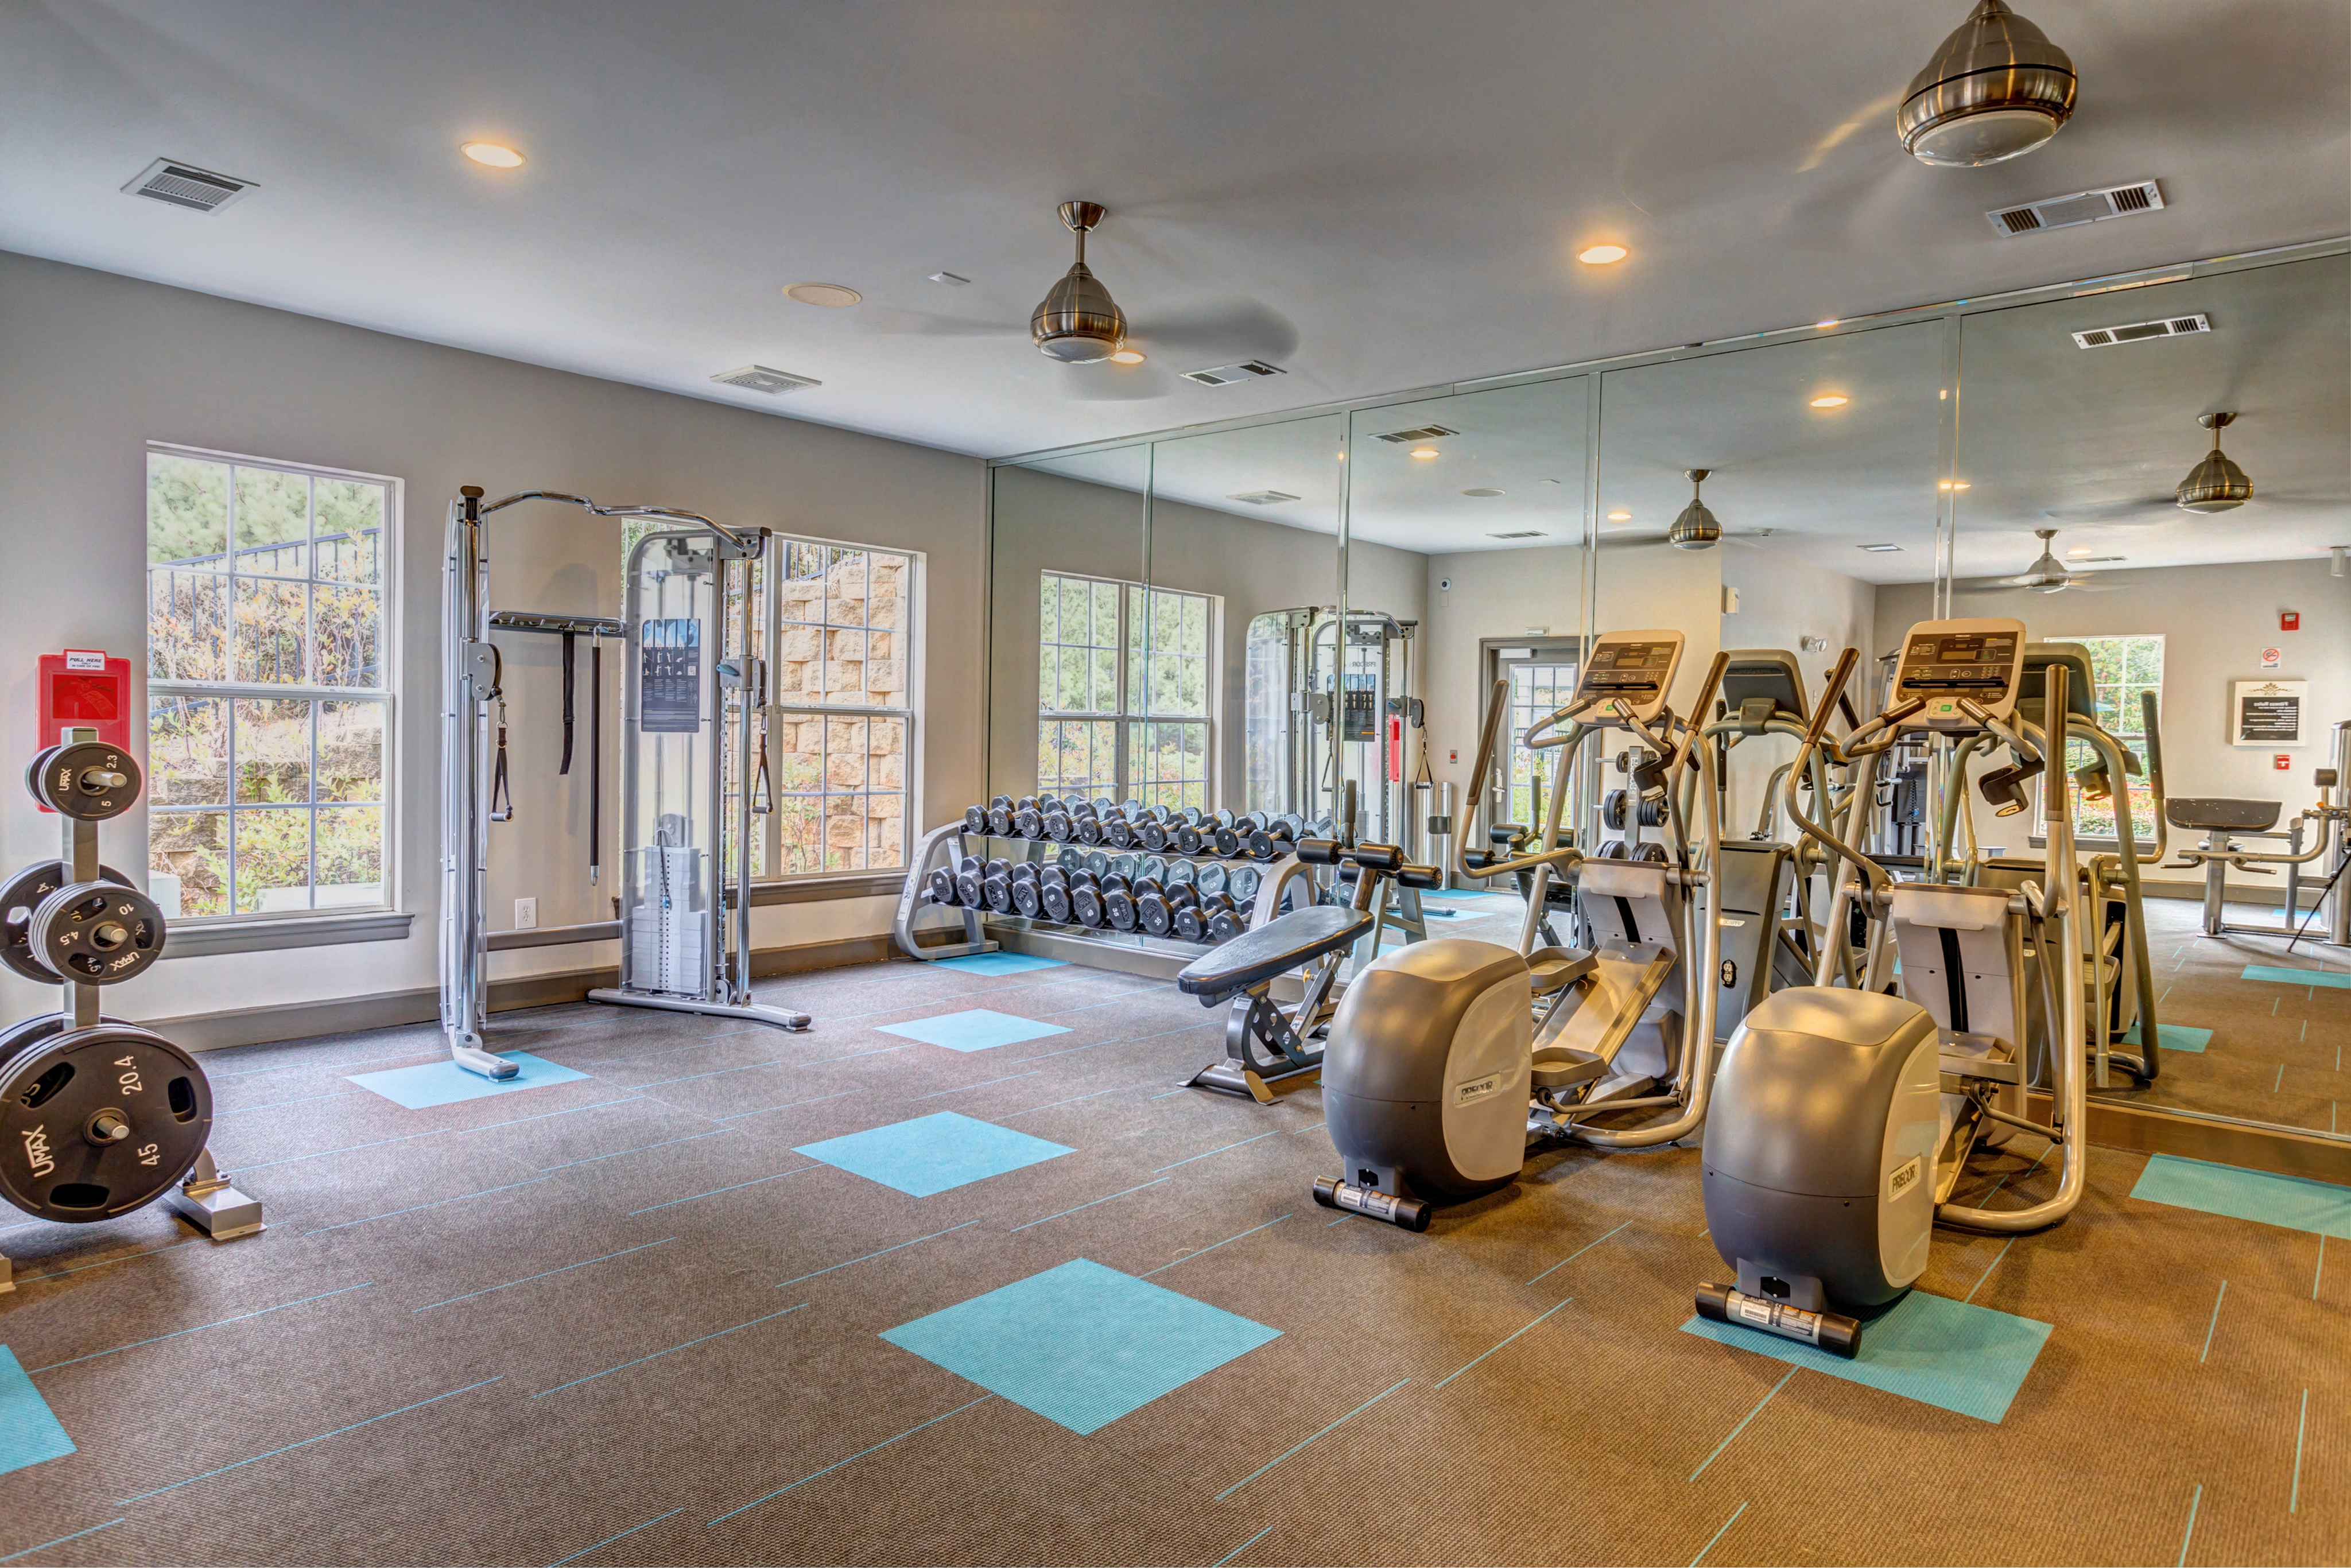 View of Fitness Center, Showing Cardio Machines, Free Weights, and Cable Machine at Summer Park Apartments